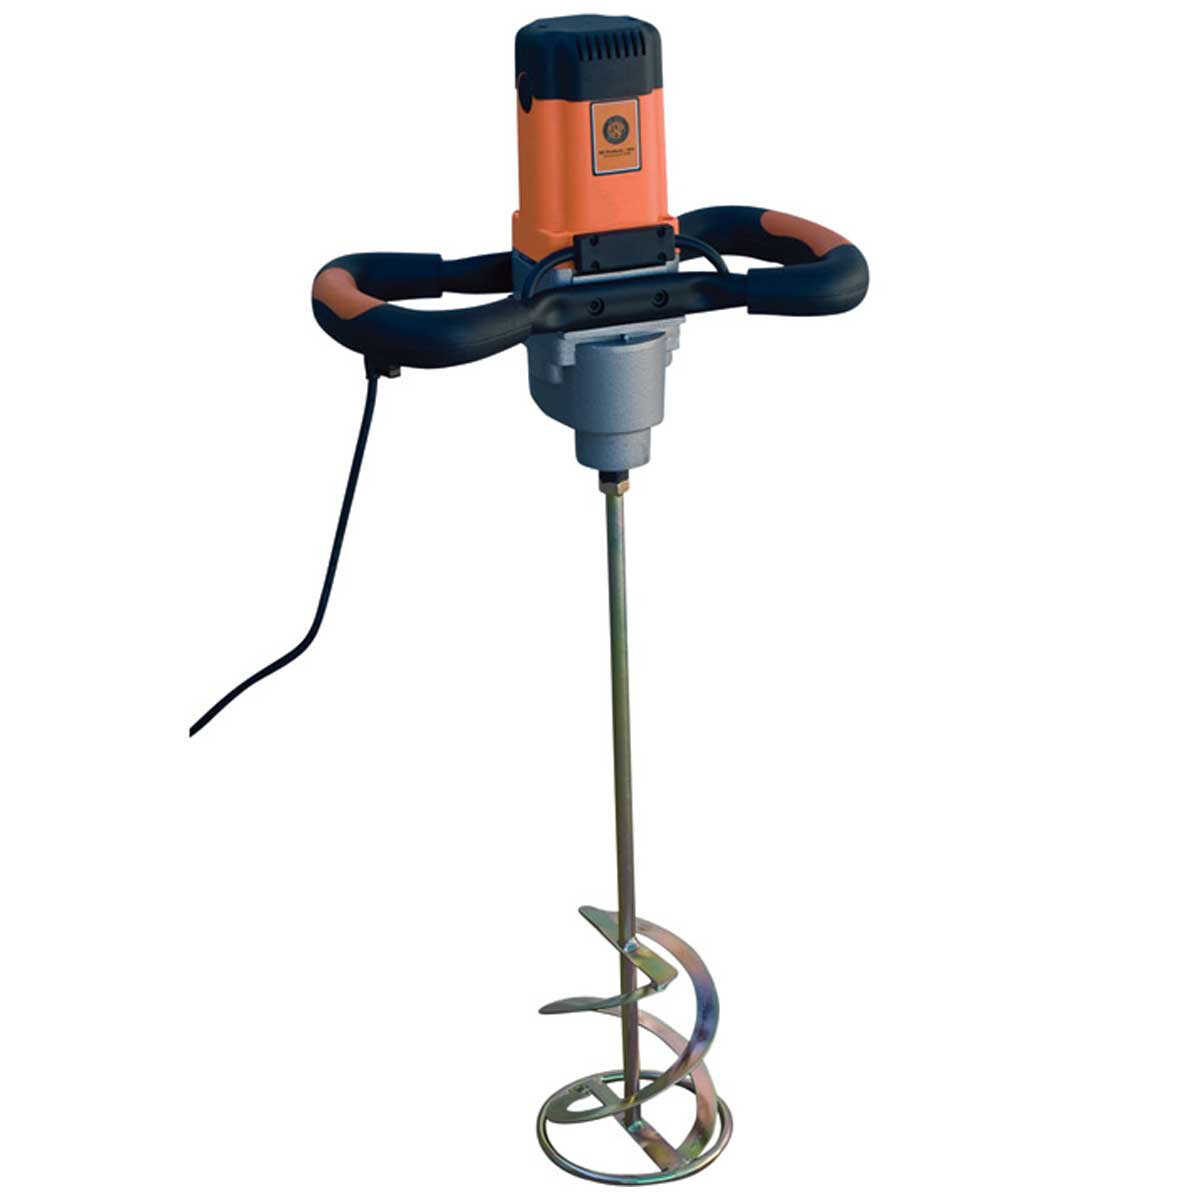 BNR6400 Mortar Mixer stirs up all types of cement, mortar, grout and paint. This mortar mixer stirs faster, easier, and safer than any other mixing drill on the market today.